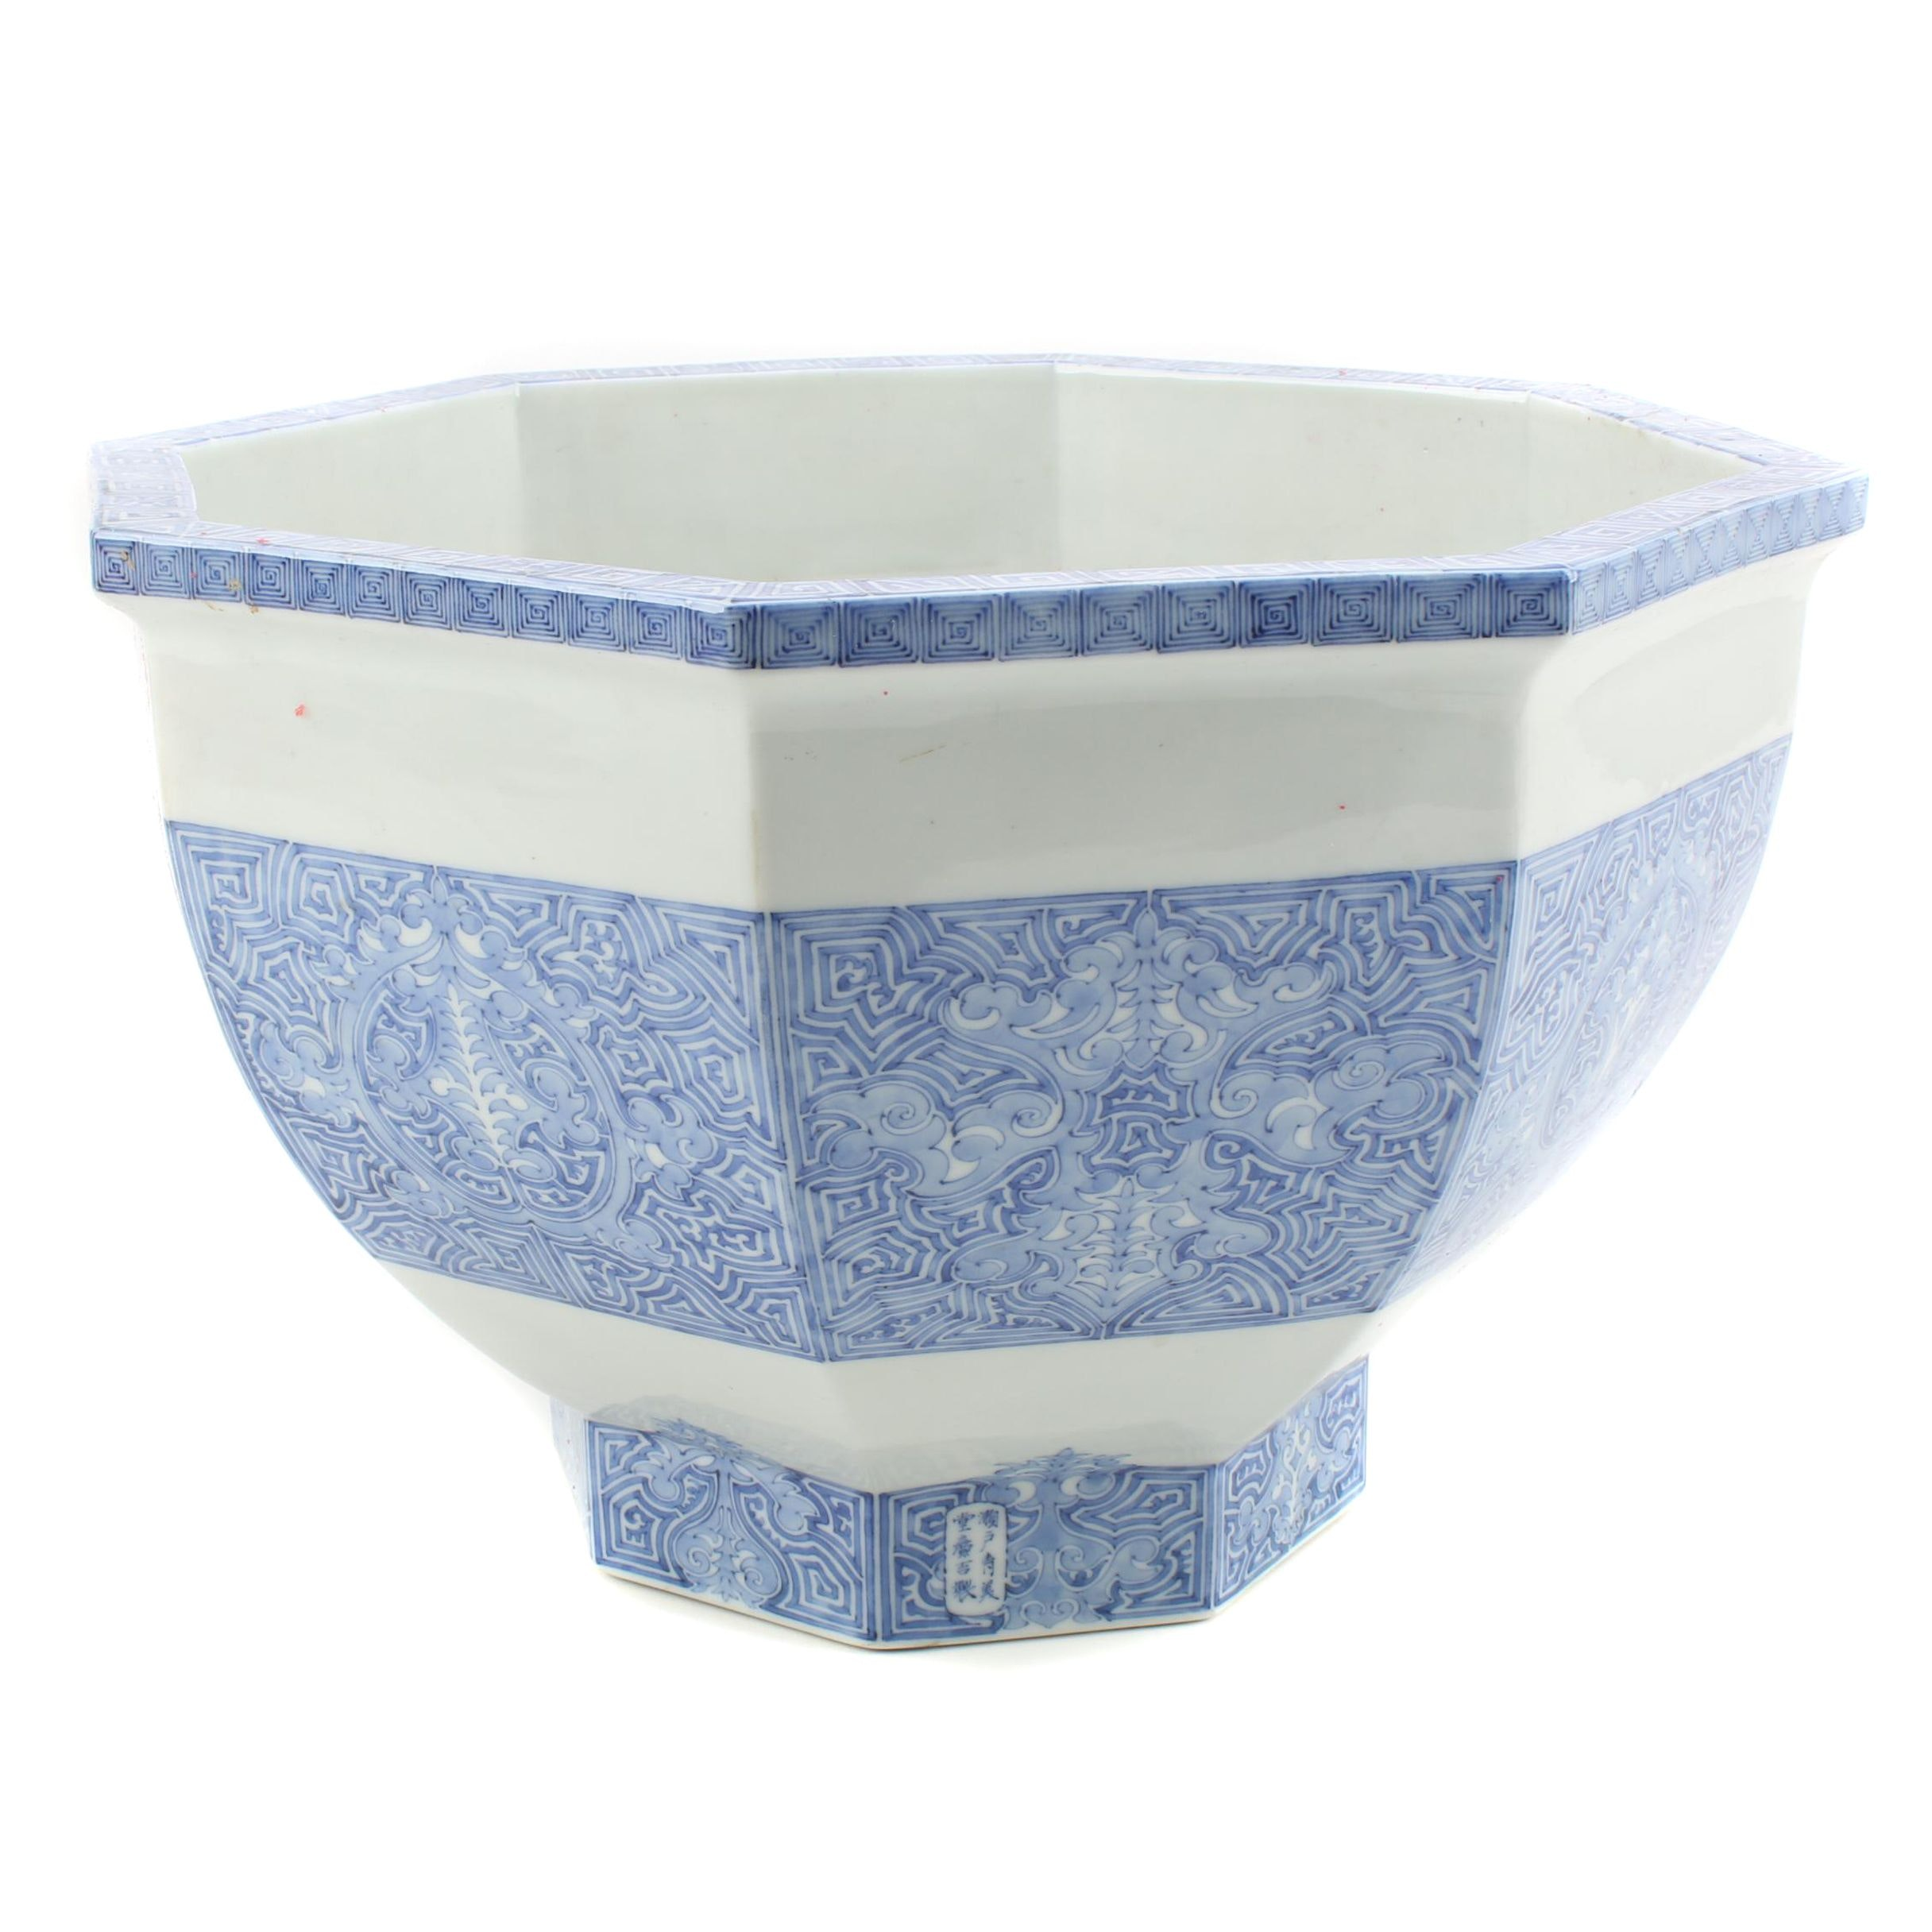 Chinese Porcelain Blue and White Jardiniere with Meander Border